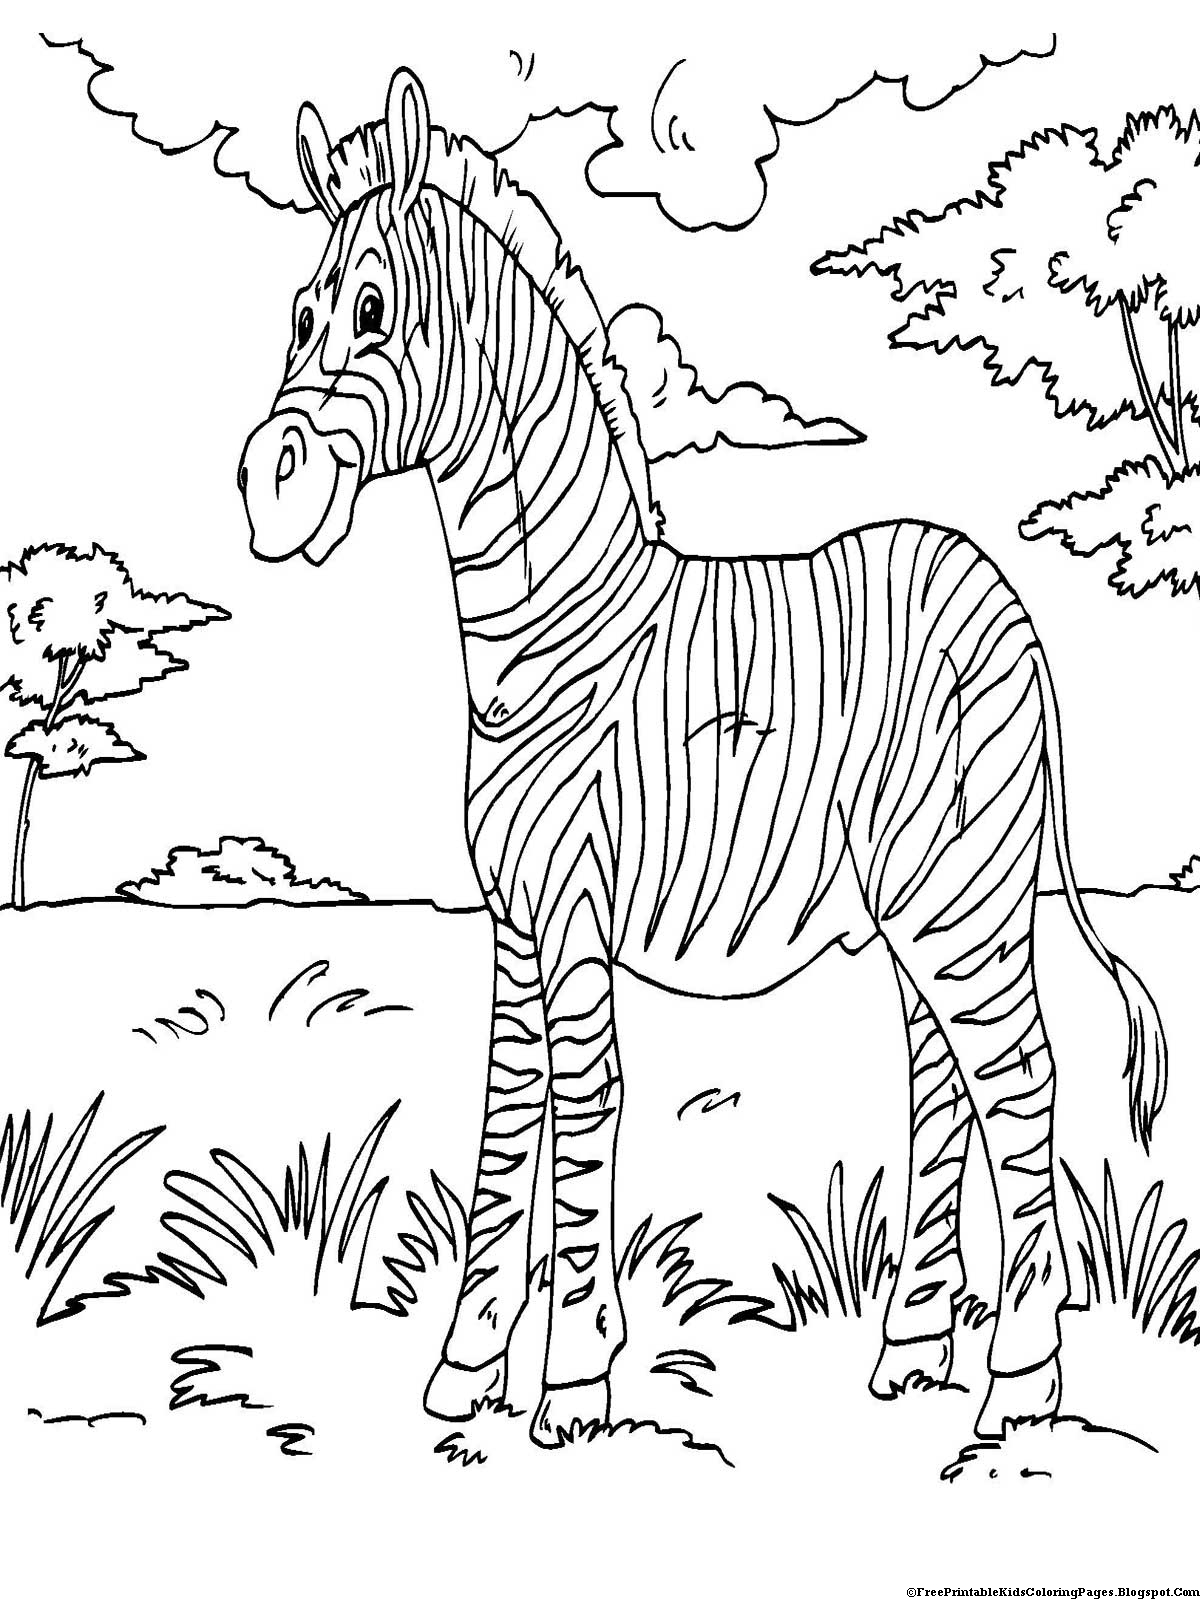 coloring picture to print free printable puppies coloring pages for kids print picture coloring to